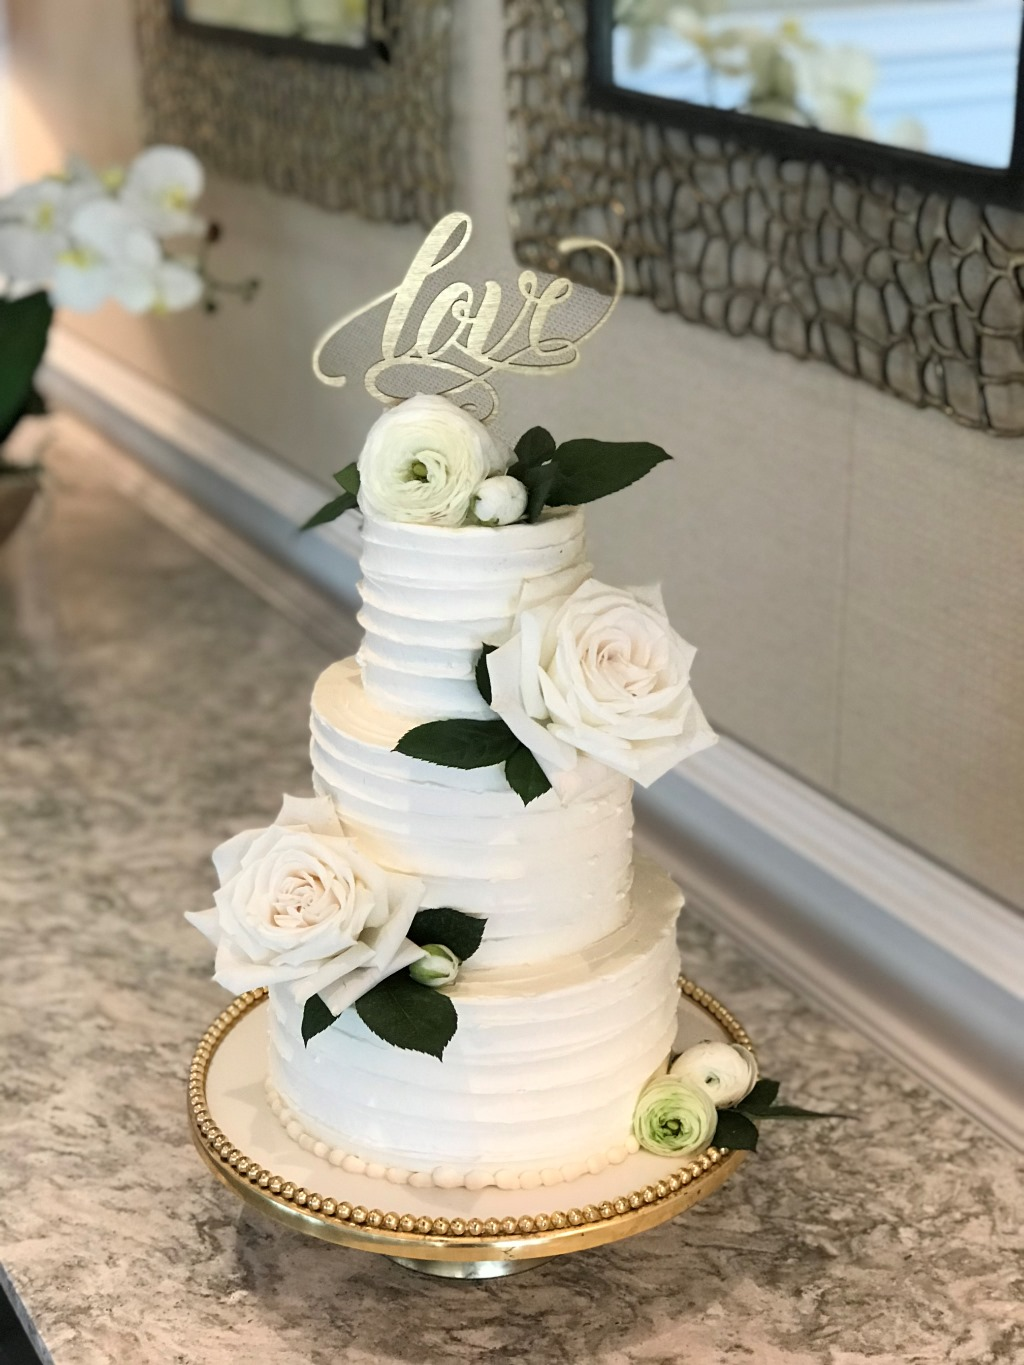 Southwest Florida is the place to be for destination weddings! Petite Wedding Cakes are the perfect edible art to show your flare and